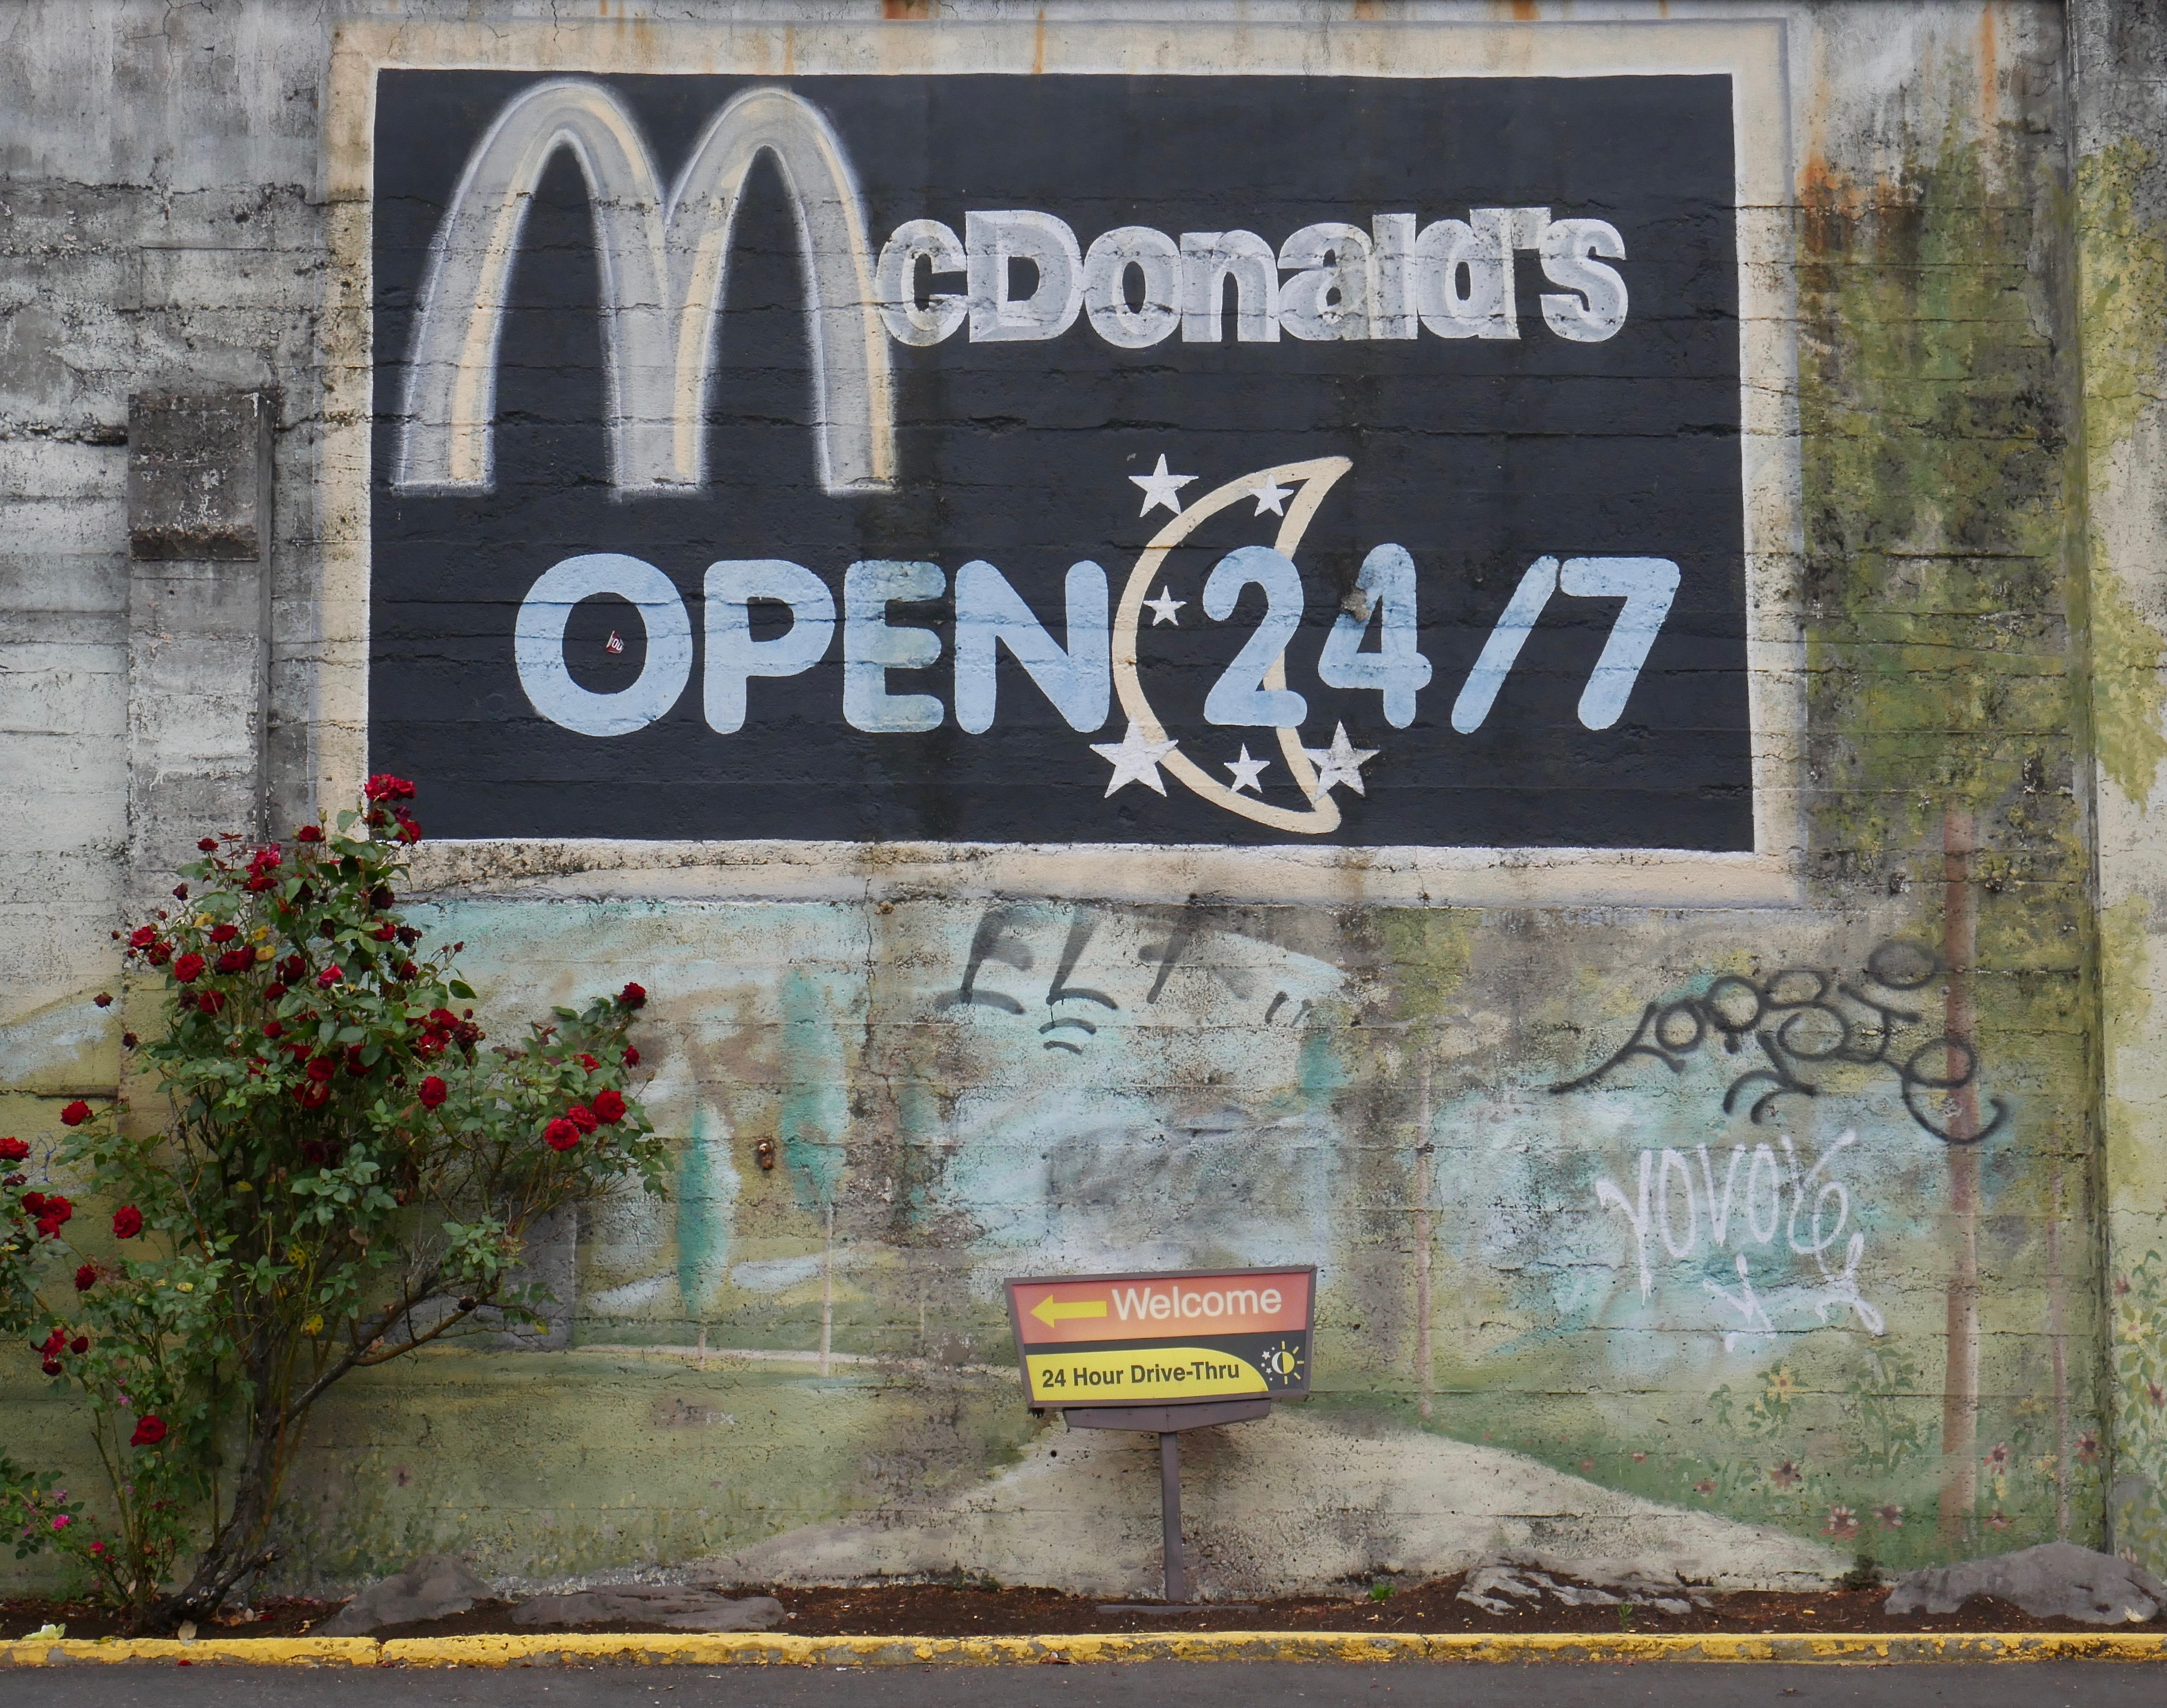 McDonald's Open 24/7 graffiti